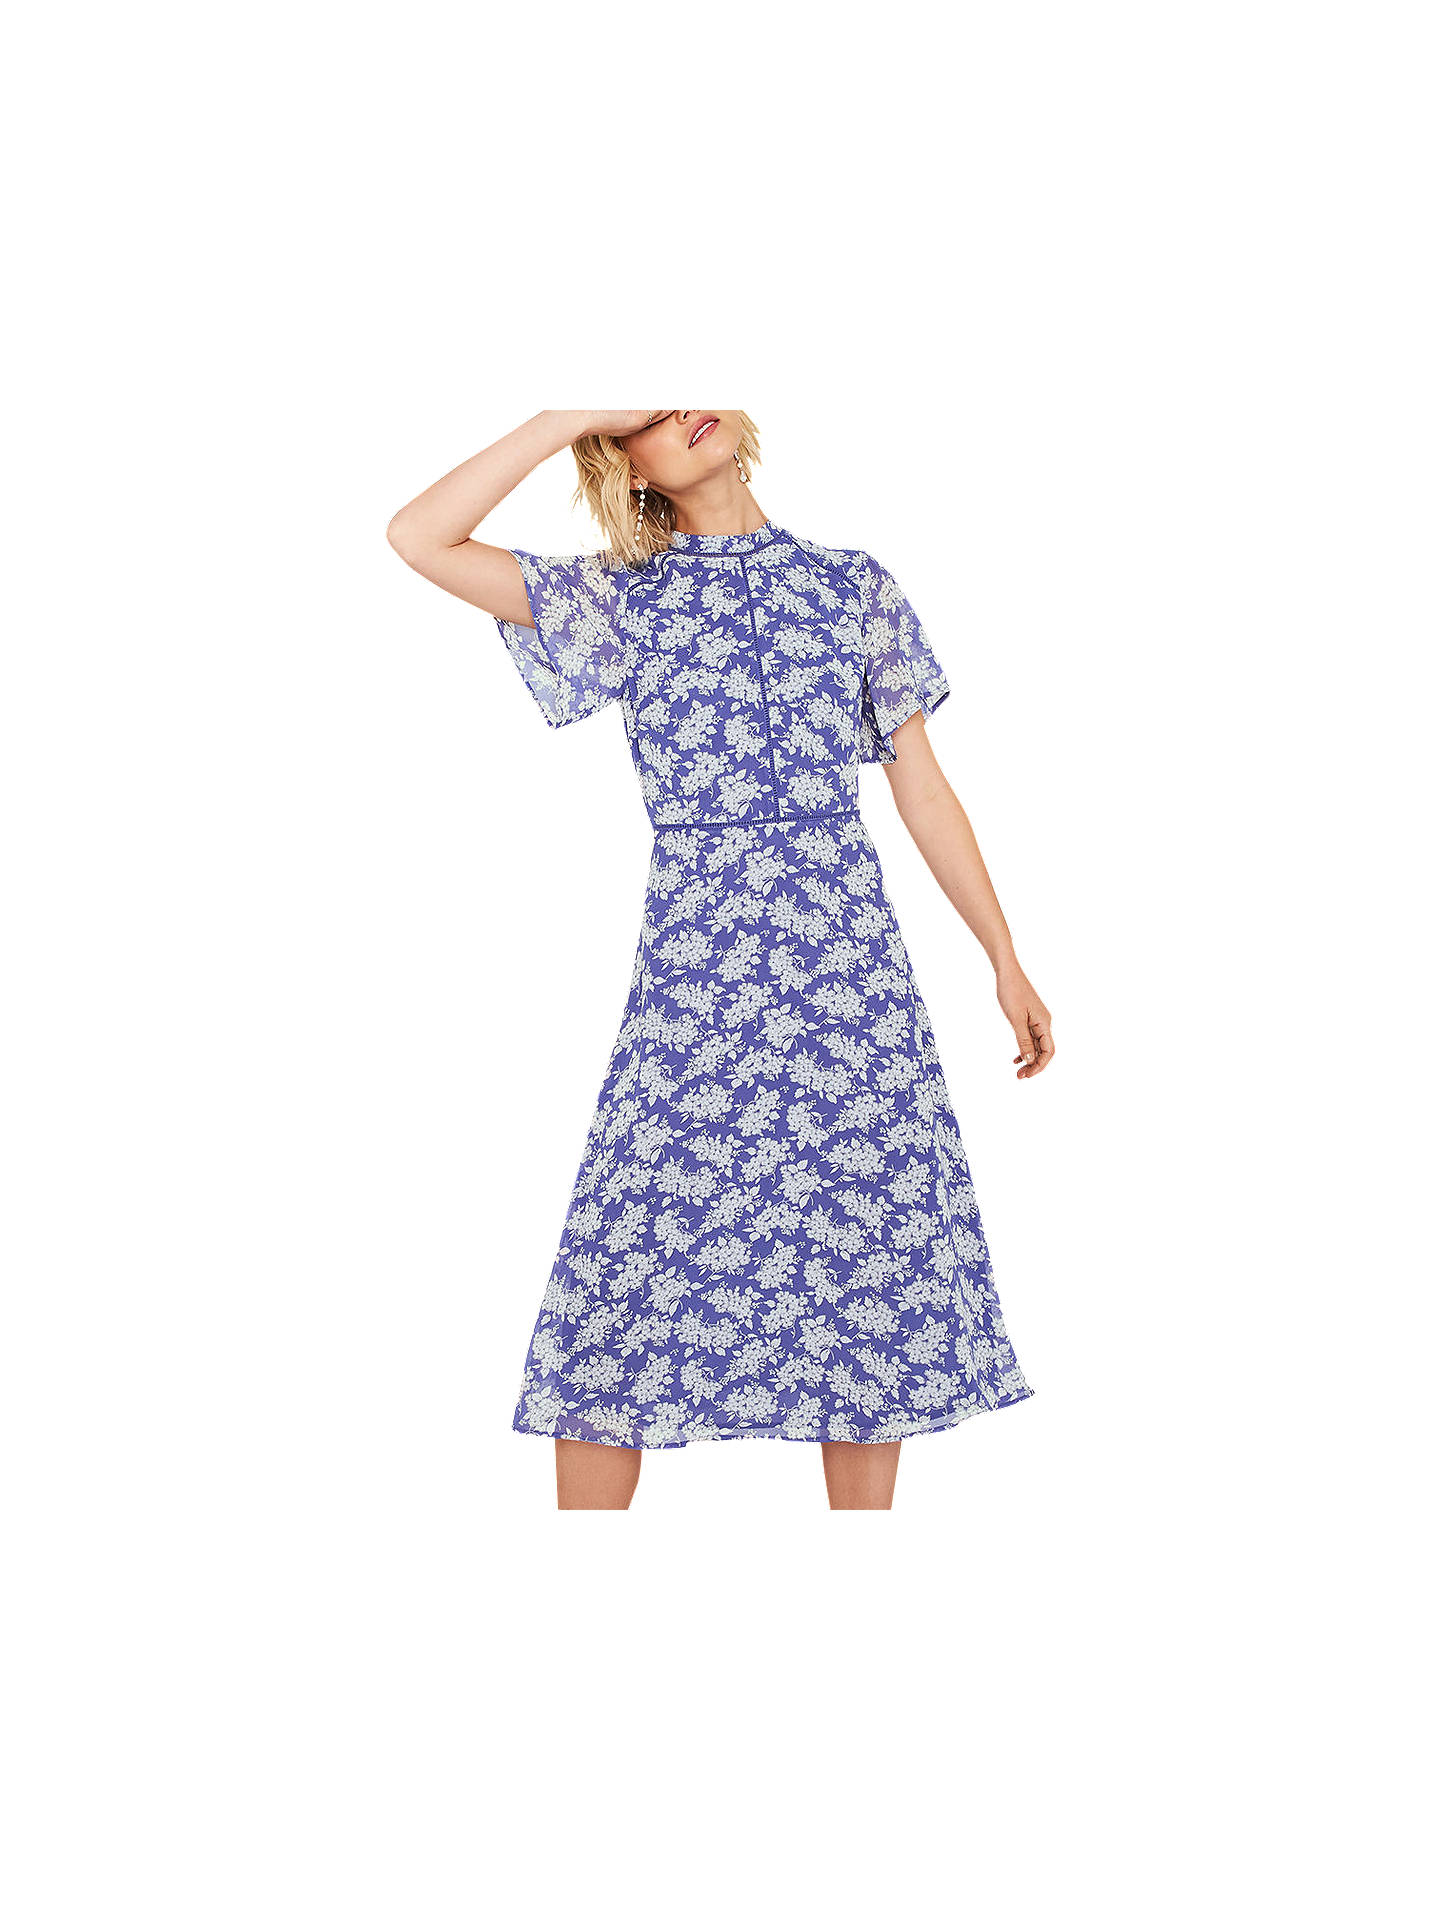 a945db3a63a3 Buy Oasis Long Length Provence Dress, Multi/Blue, 6 Online at johnlewis.